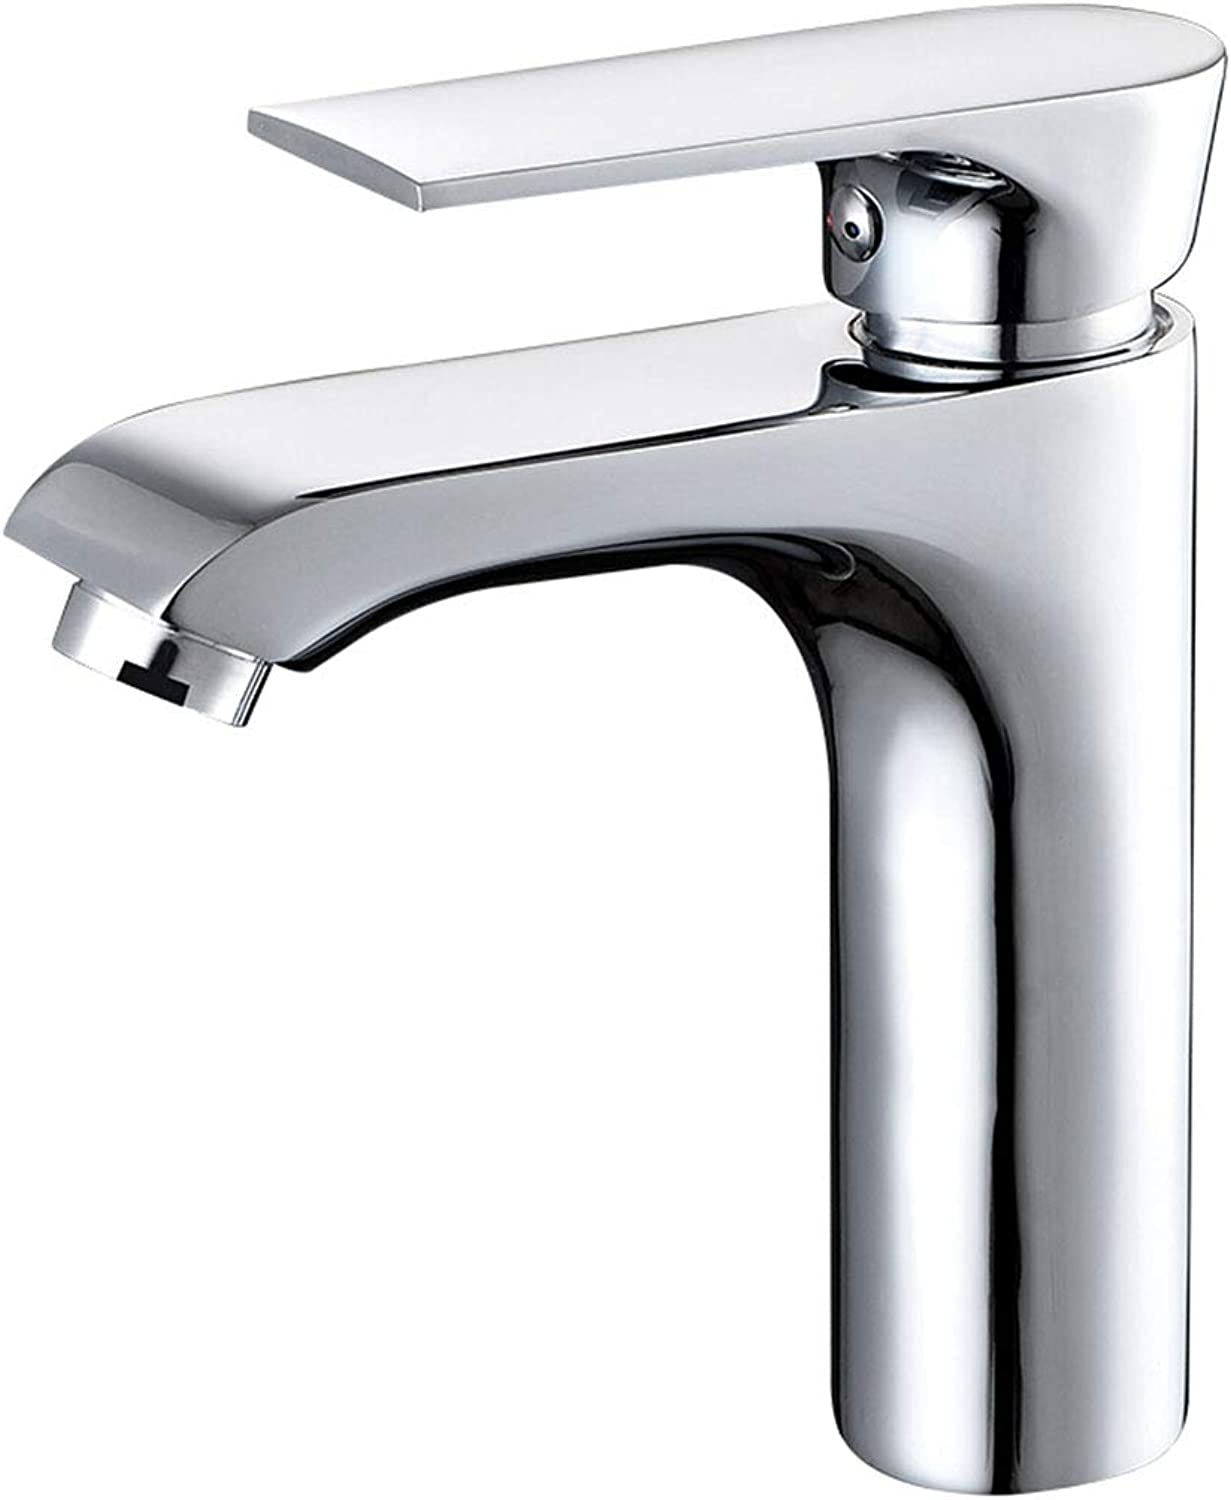 Shuilongtou Hot and cold water faucet 180 degree redation copper main body single hole hot and cold mixed water basin high foot faucet ceramic valve core